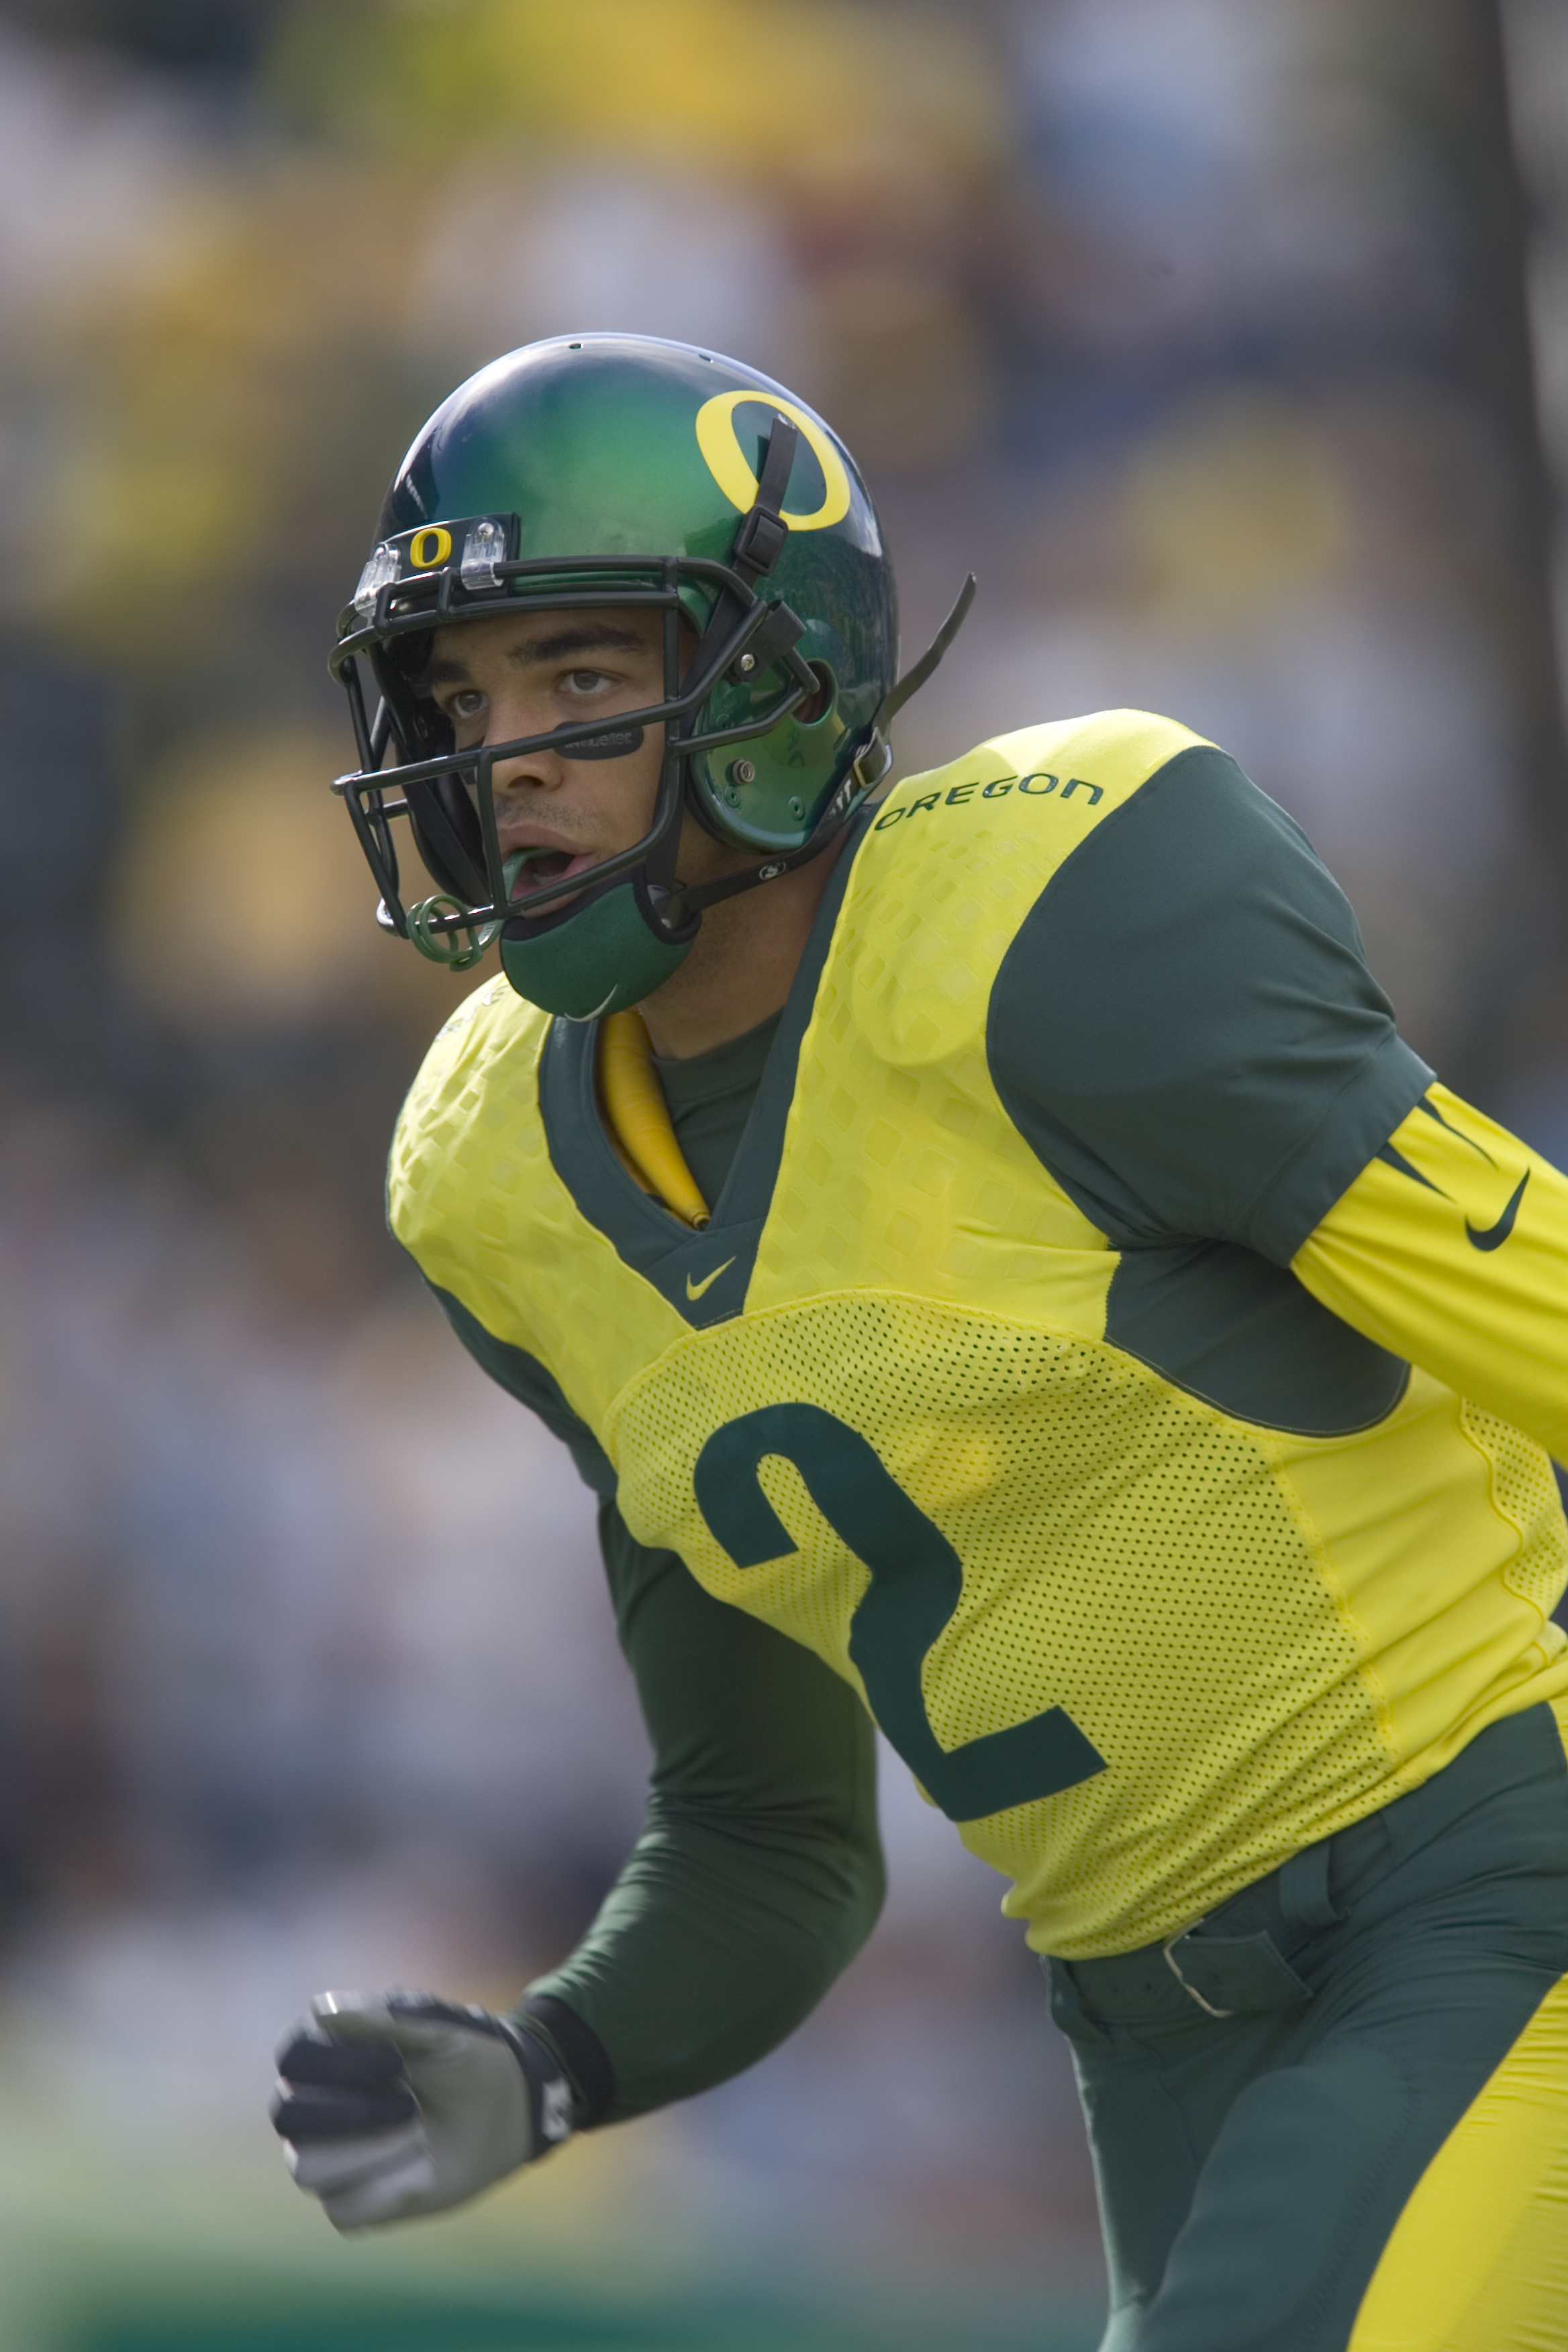 Jordan Kent, Oregon Ducks Wide Receiver (2005-2006)